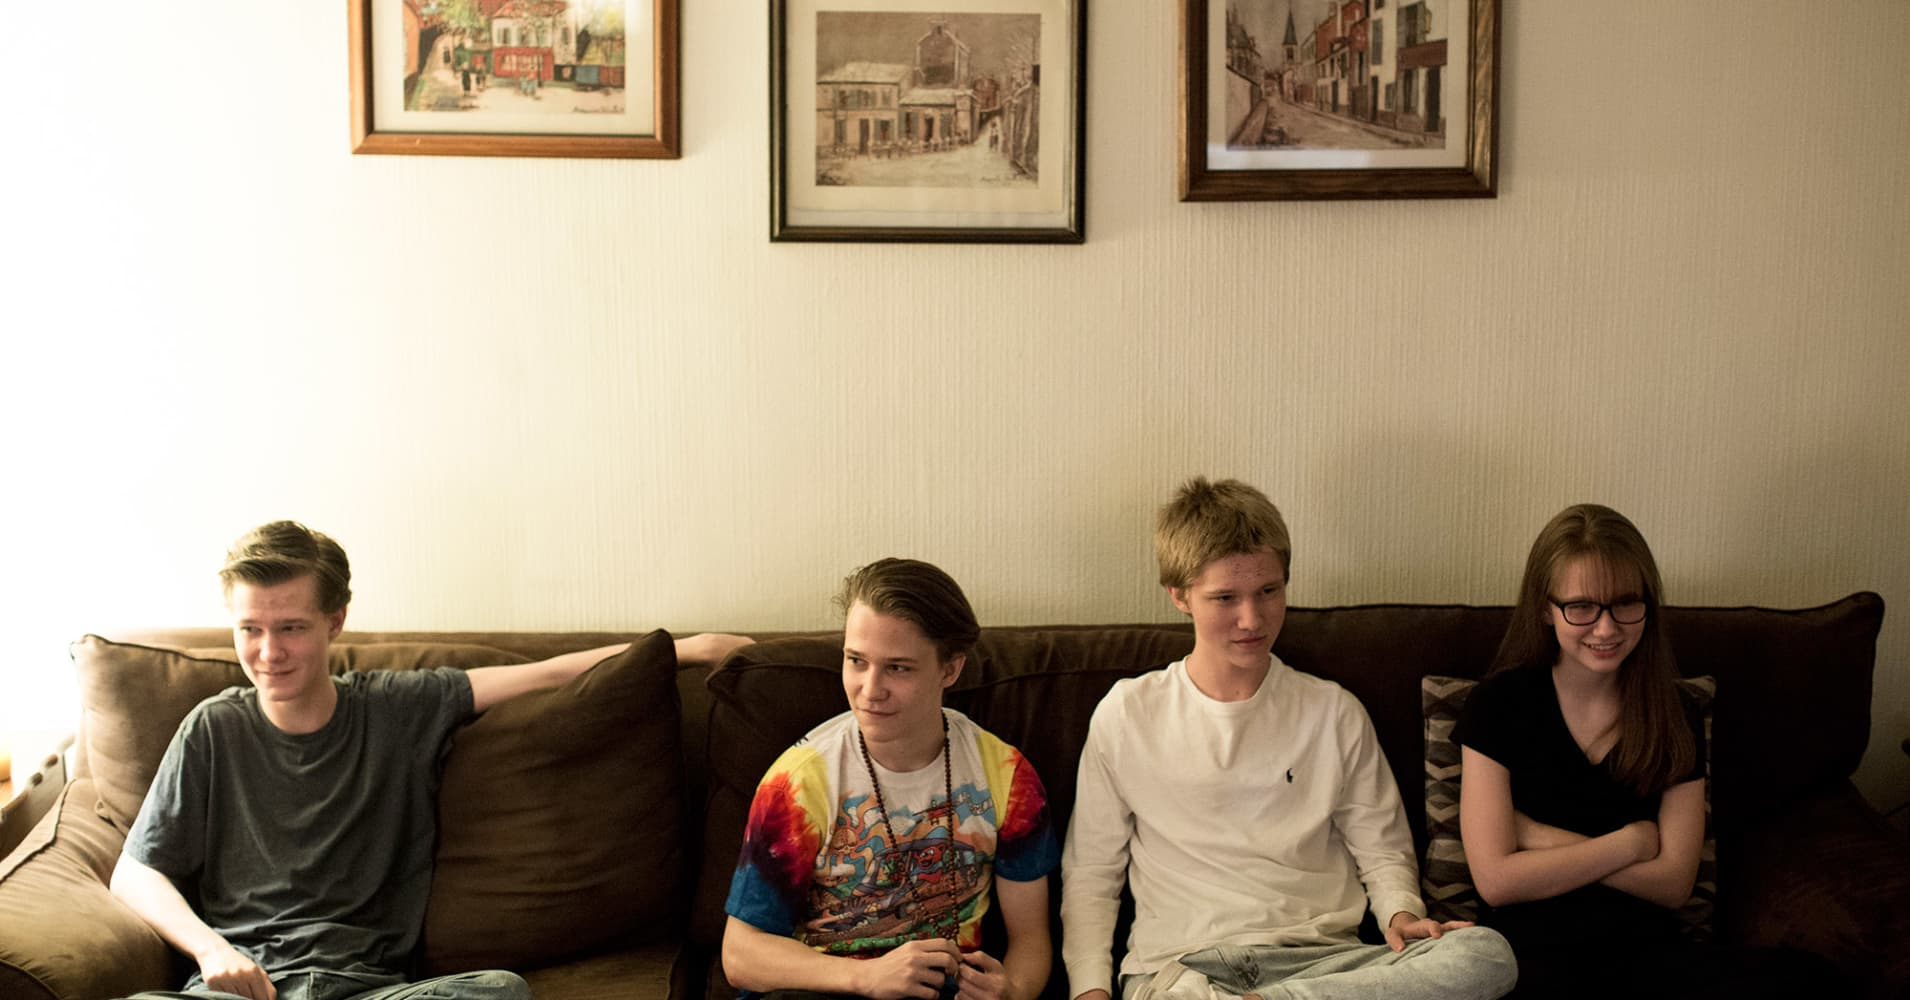 From left to right: Triplets Jake, Zachary, Lucas Smith, all 17 and high school seniors, and their sister, Tess, 15, at their home in Philadelphia, April 26, 2017. The children's mother, Mary Lou Smith, said all the colleges that accepted her boys wanted them to take out loans, even though a federal financial aid formula found that the family could afford to pay nothing at all.